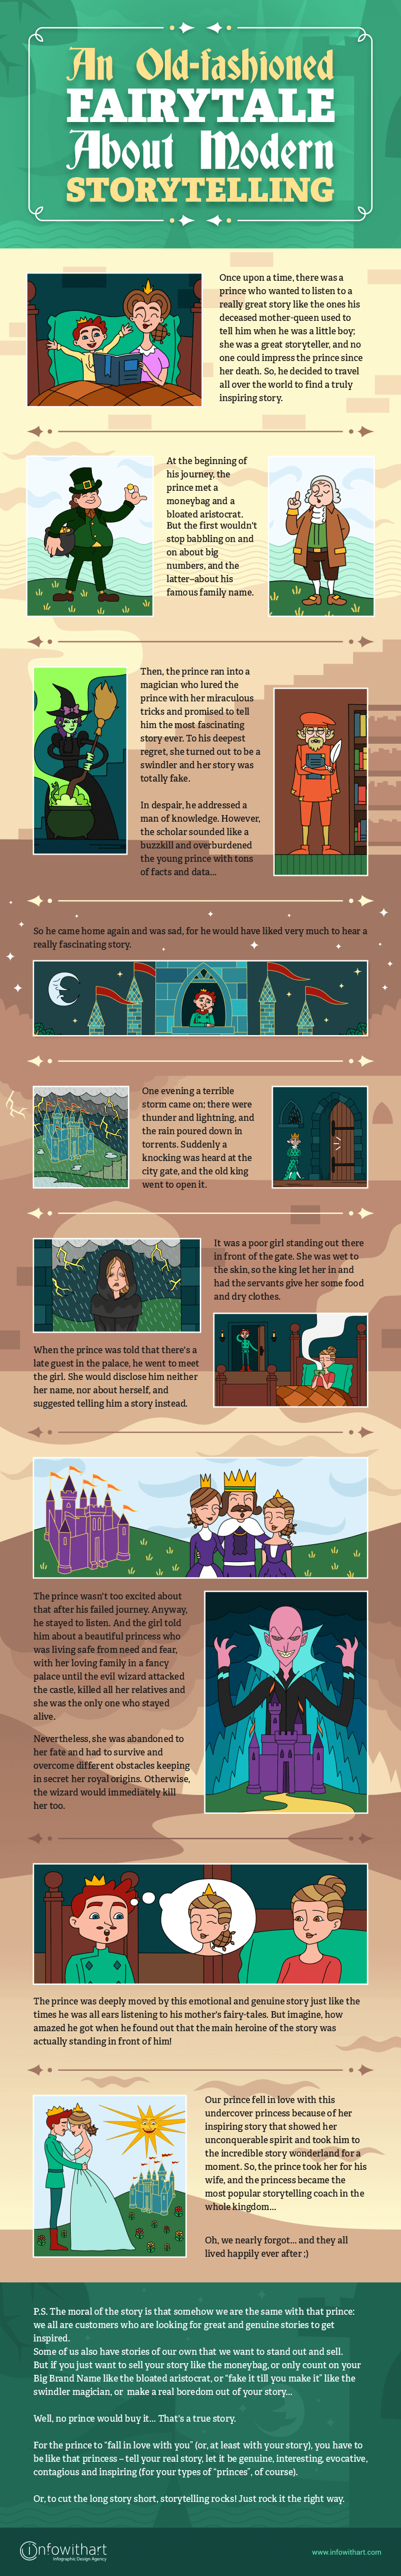 An Old-Fashioned Fairytale About Modern Storytelling - www